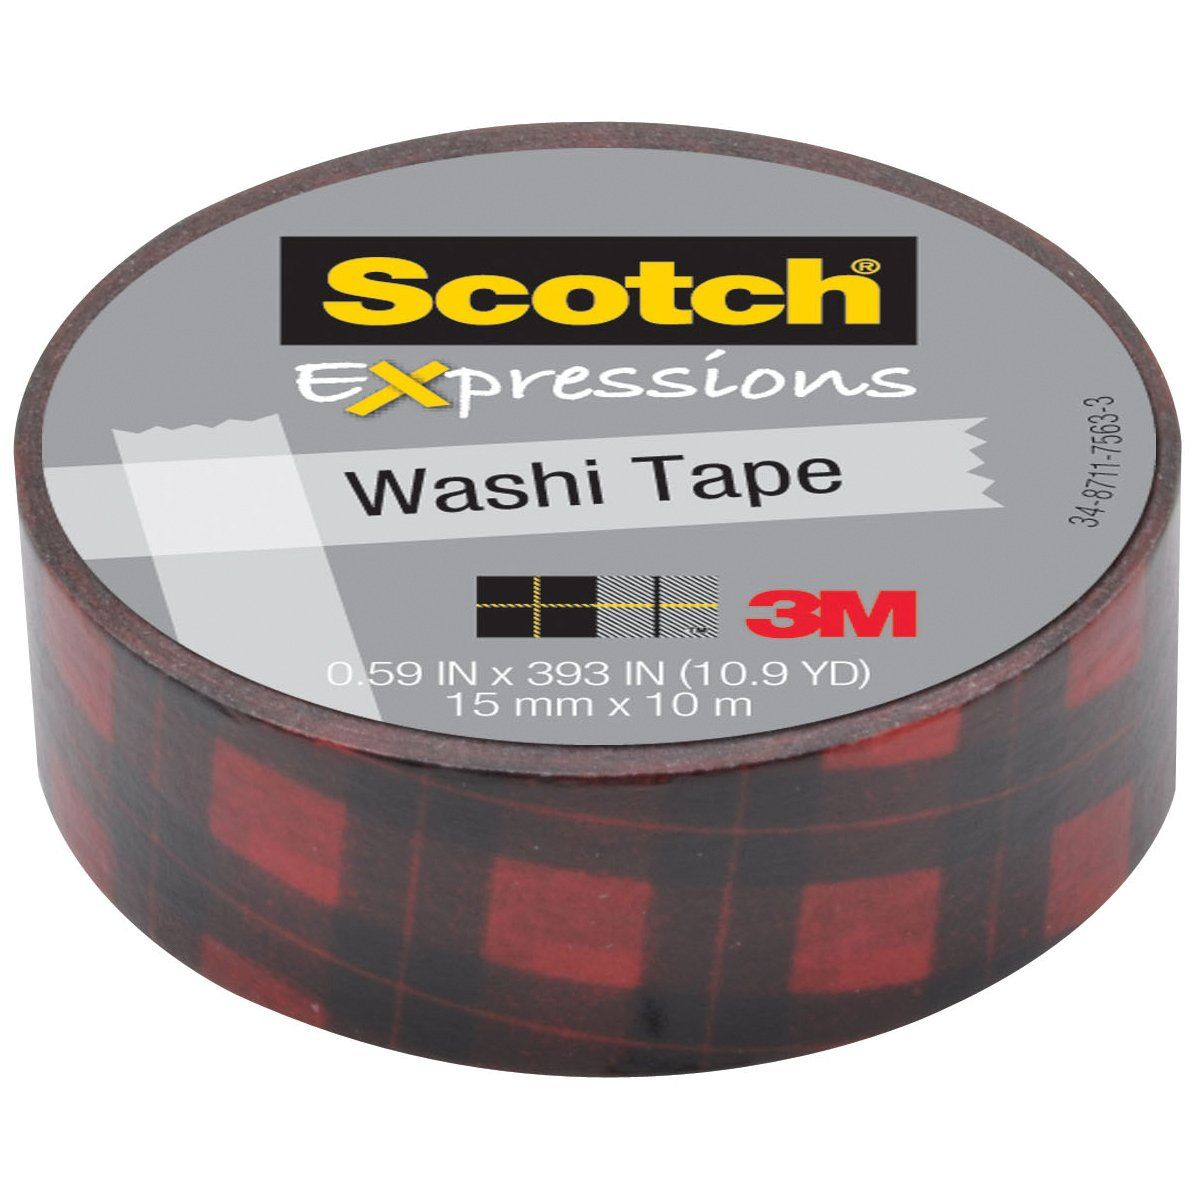 Washi Tape Red Buffalo Plaid Washi Tape Washi Masking Tape